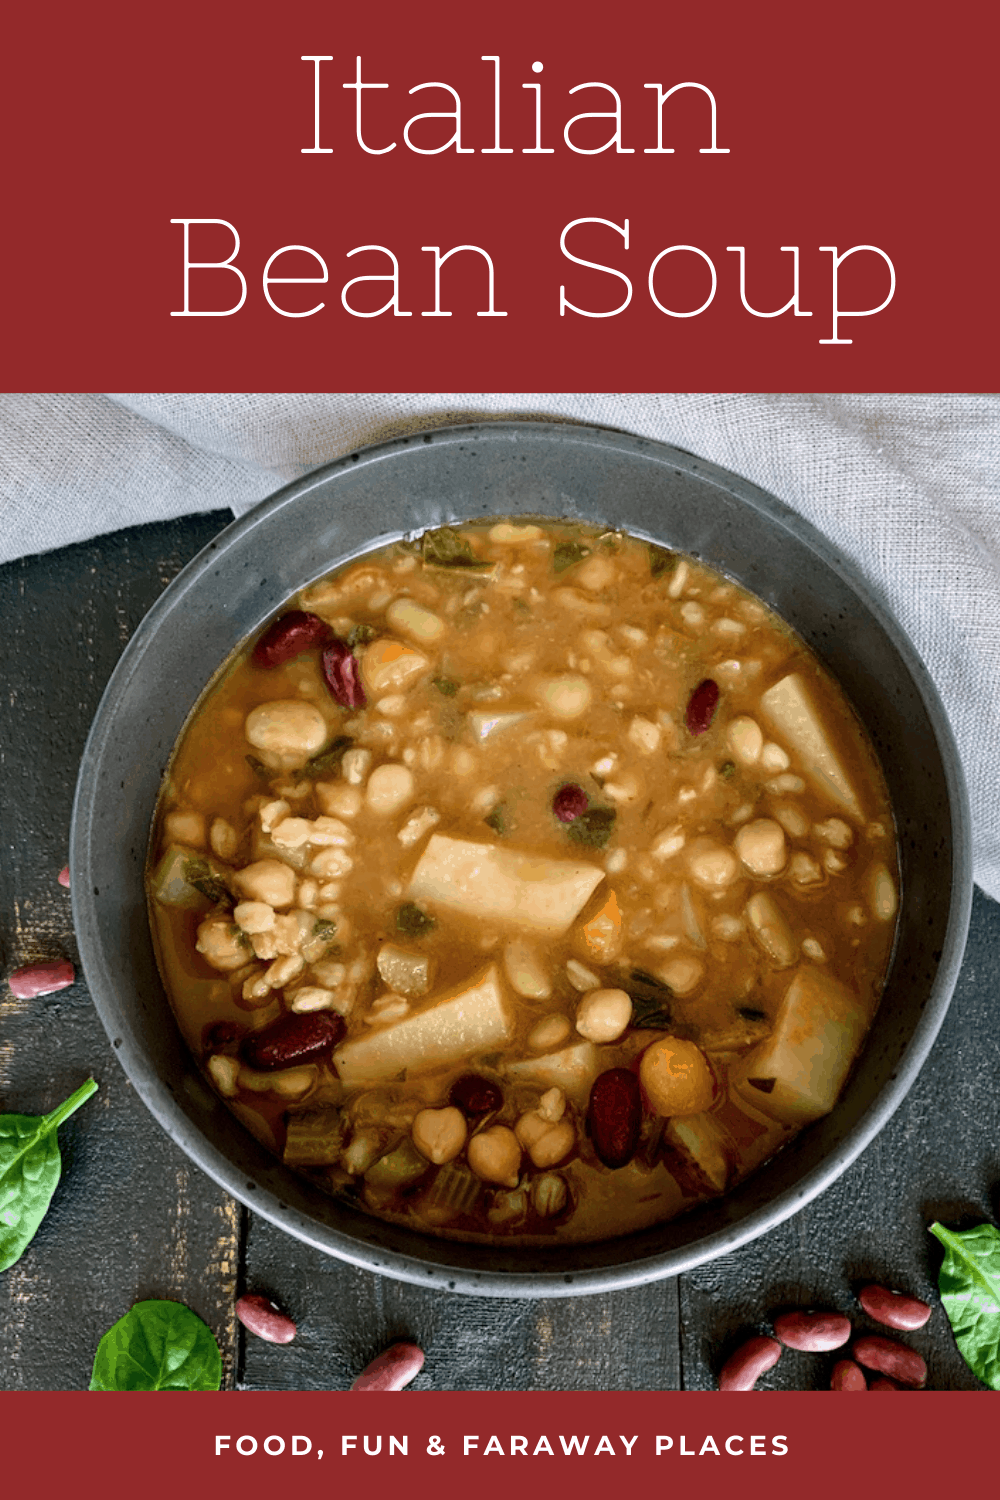 This Italian Bean soup can be made mostly with items you probably have in your pantry.